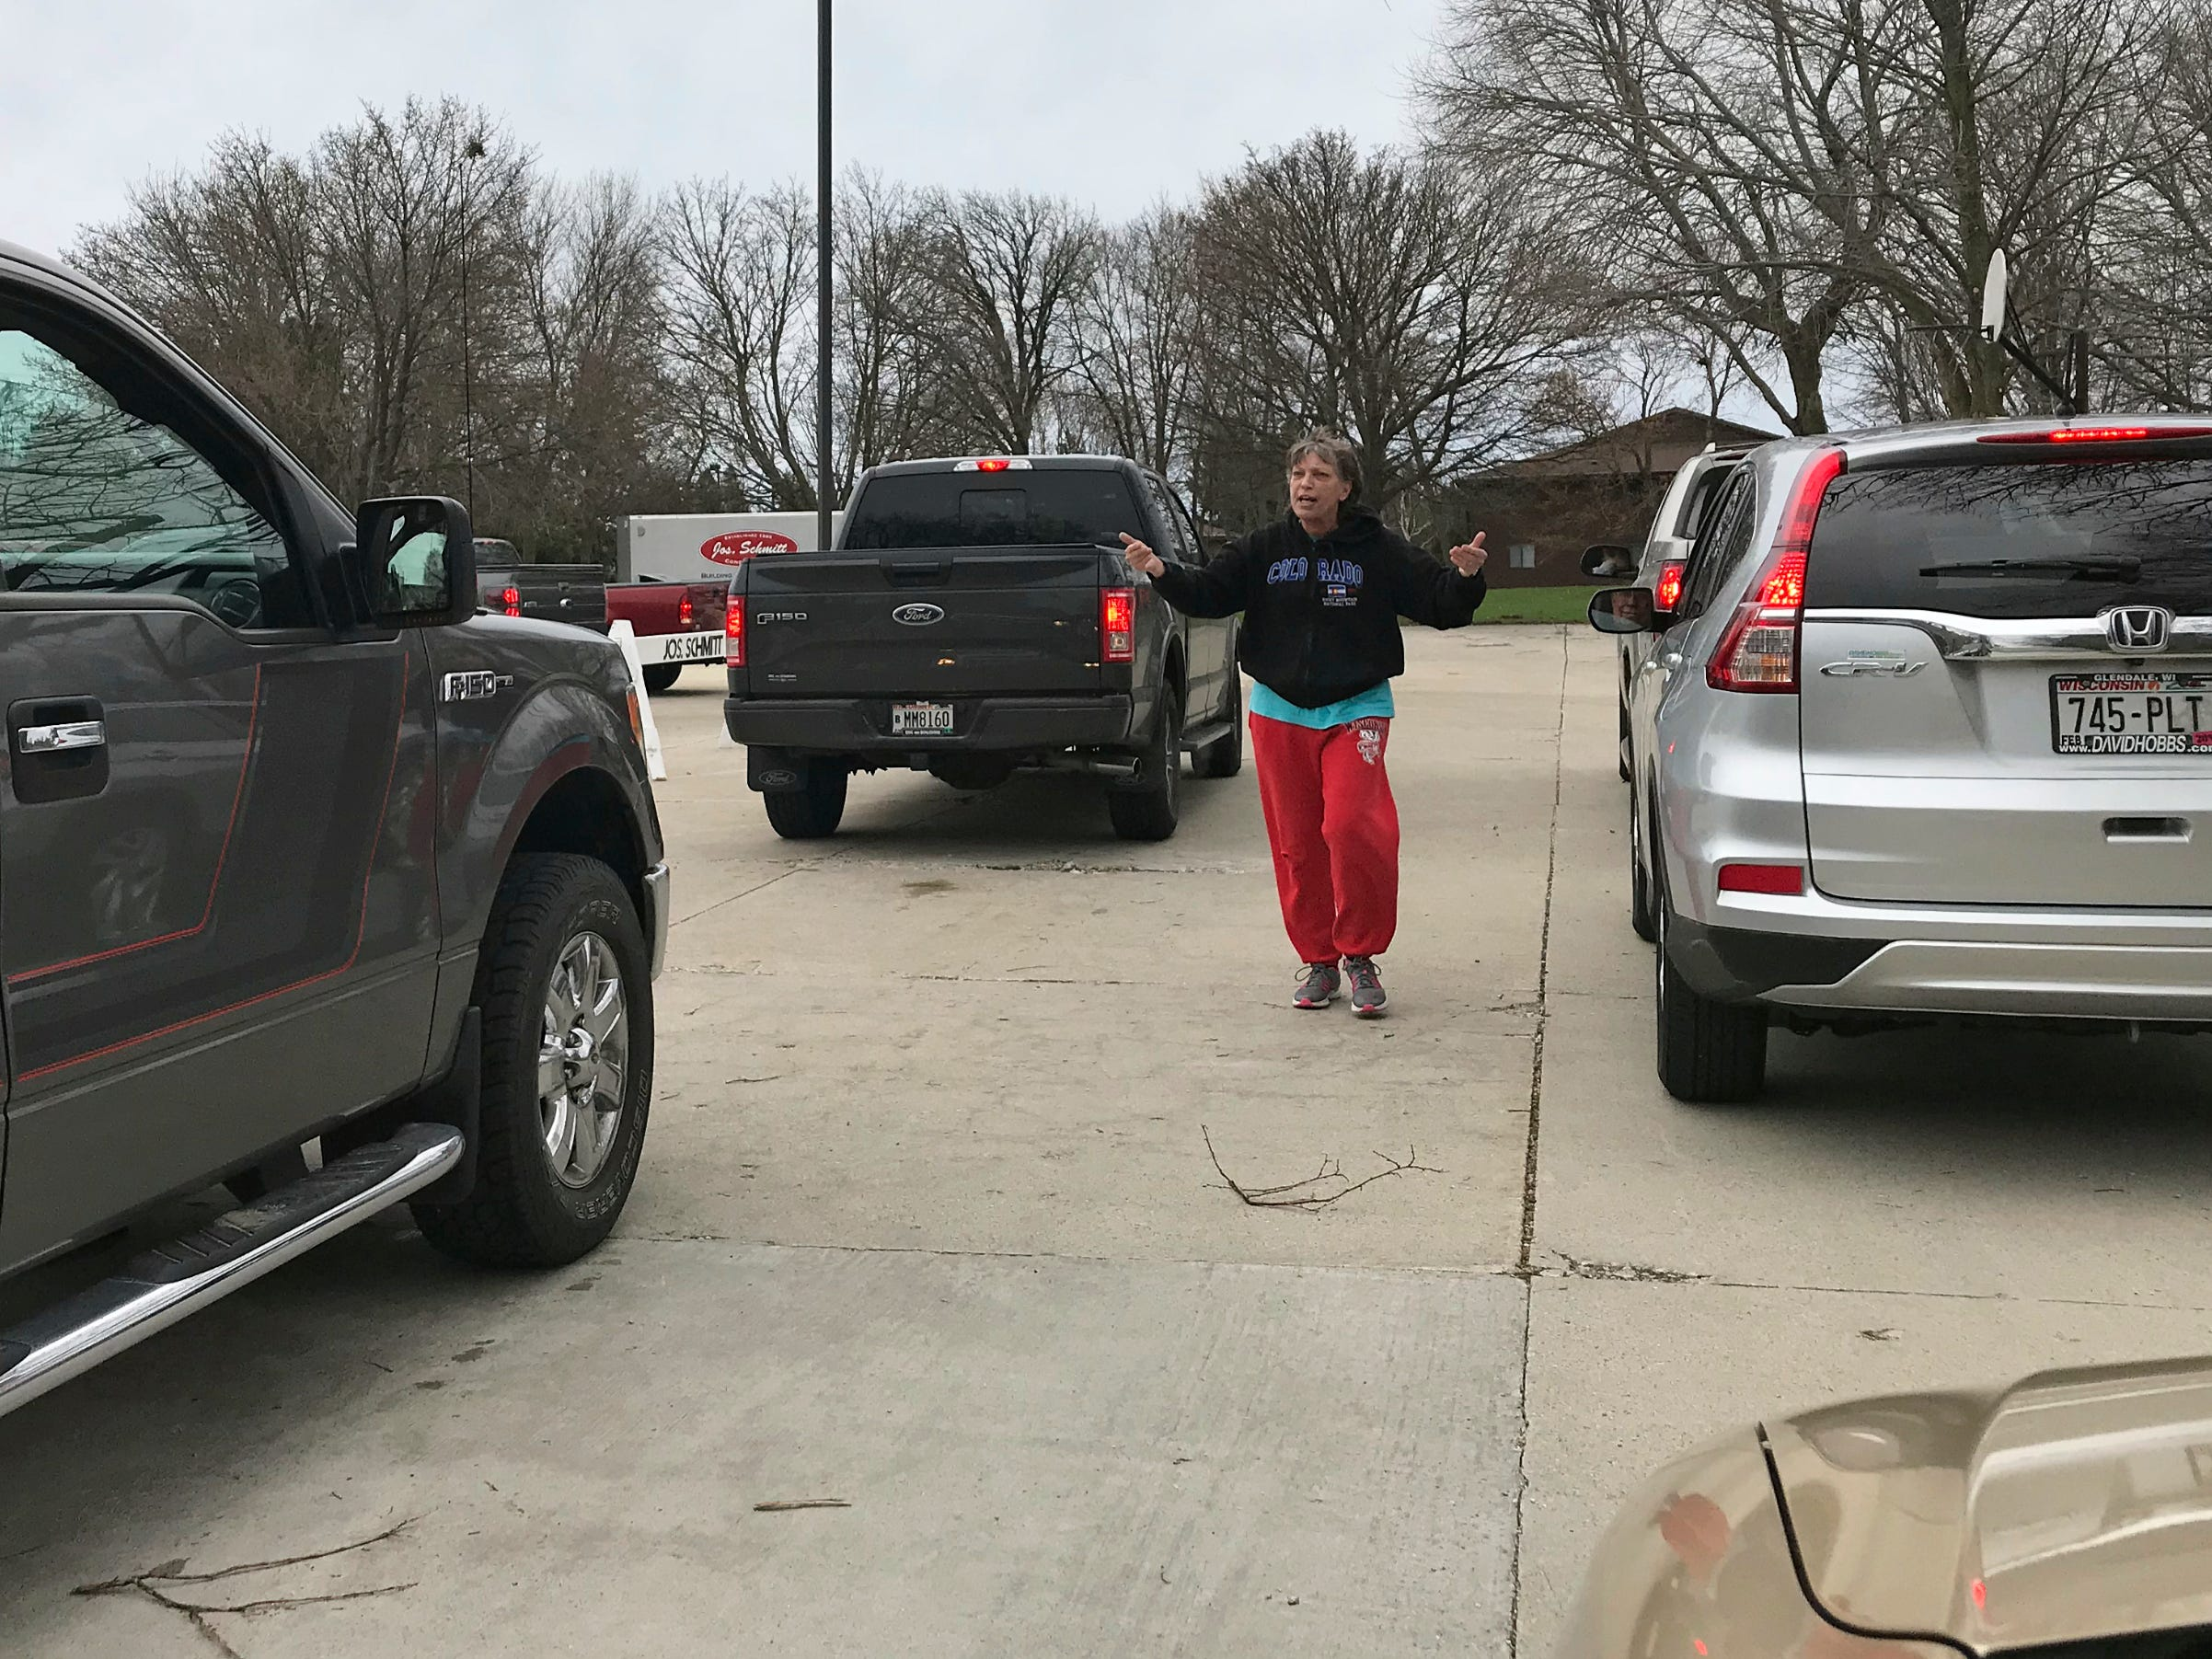 A volunteer directs traffic at the recycling event at Ebenezer United Church of Christ, Saturday, April 27, 2019, in Sheboygan, Wis.